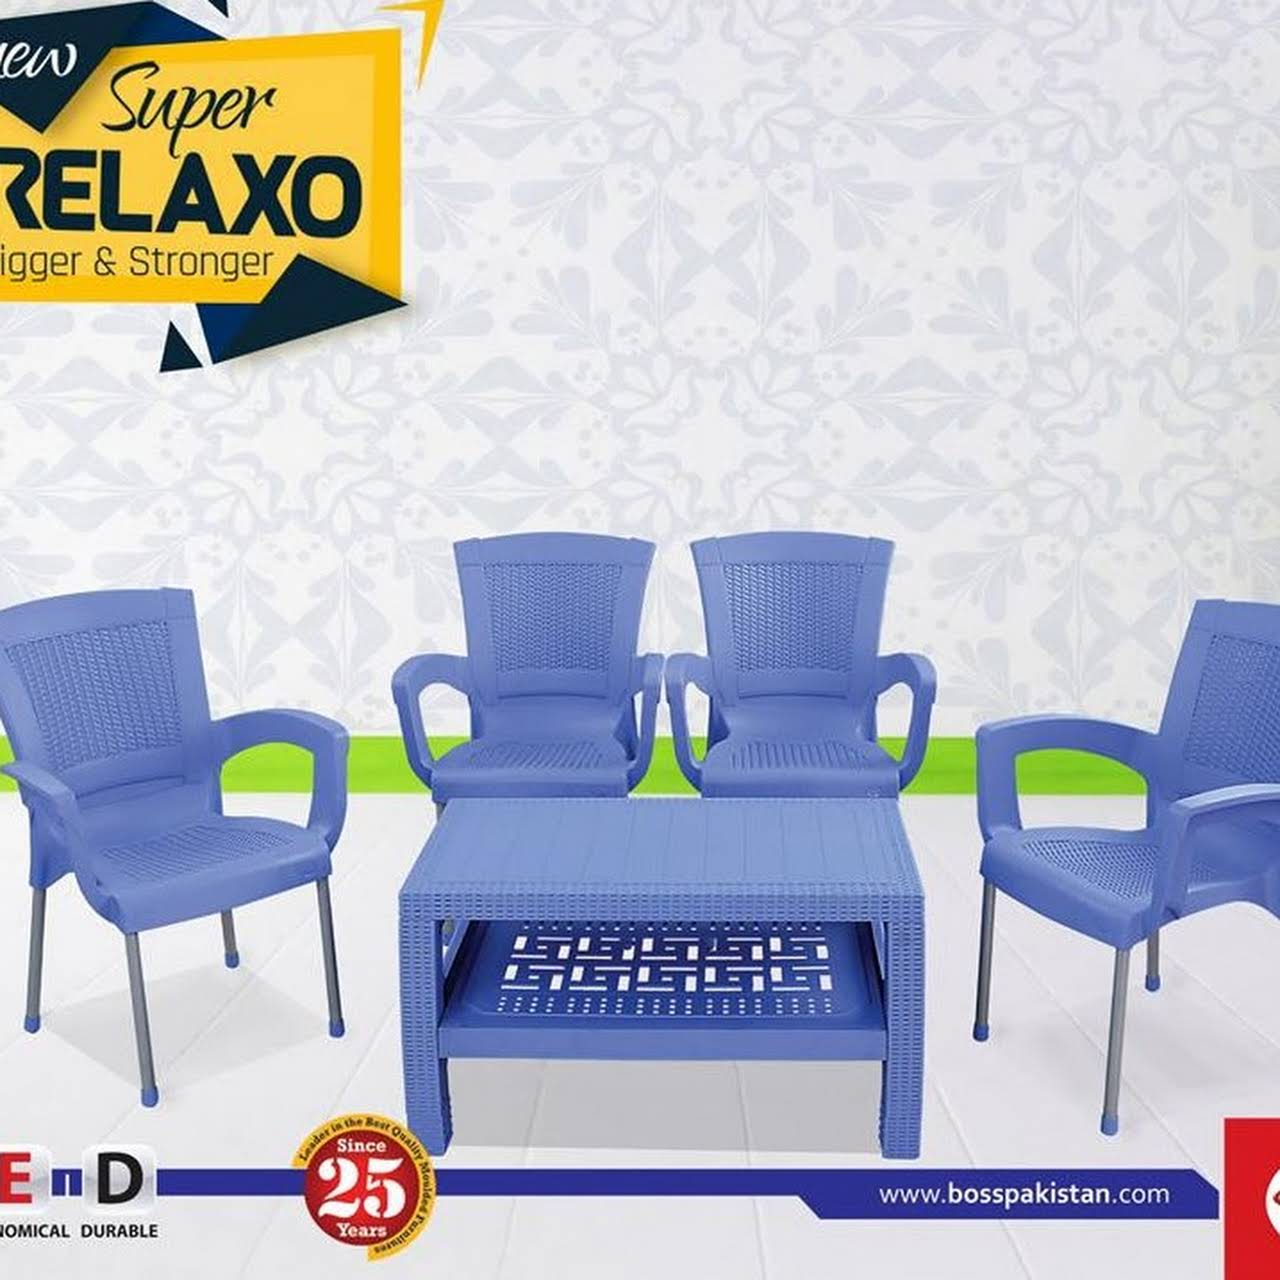 Boss Plastic Furniture Plastic Injection Molding Service In Gujranwala